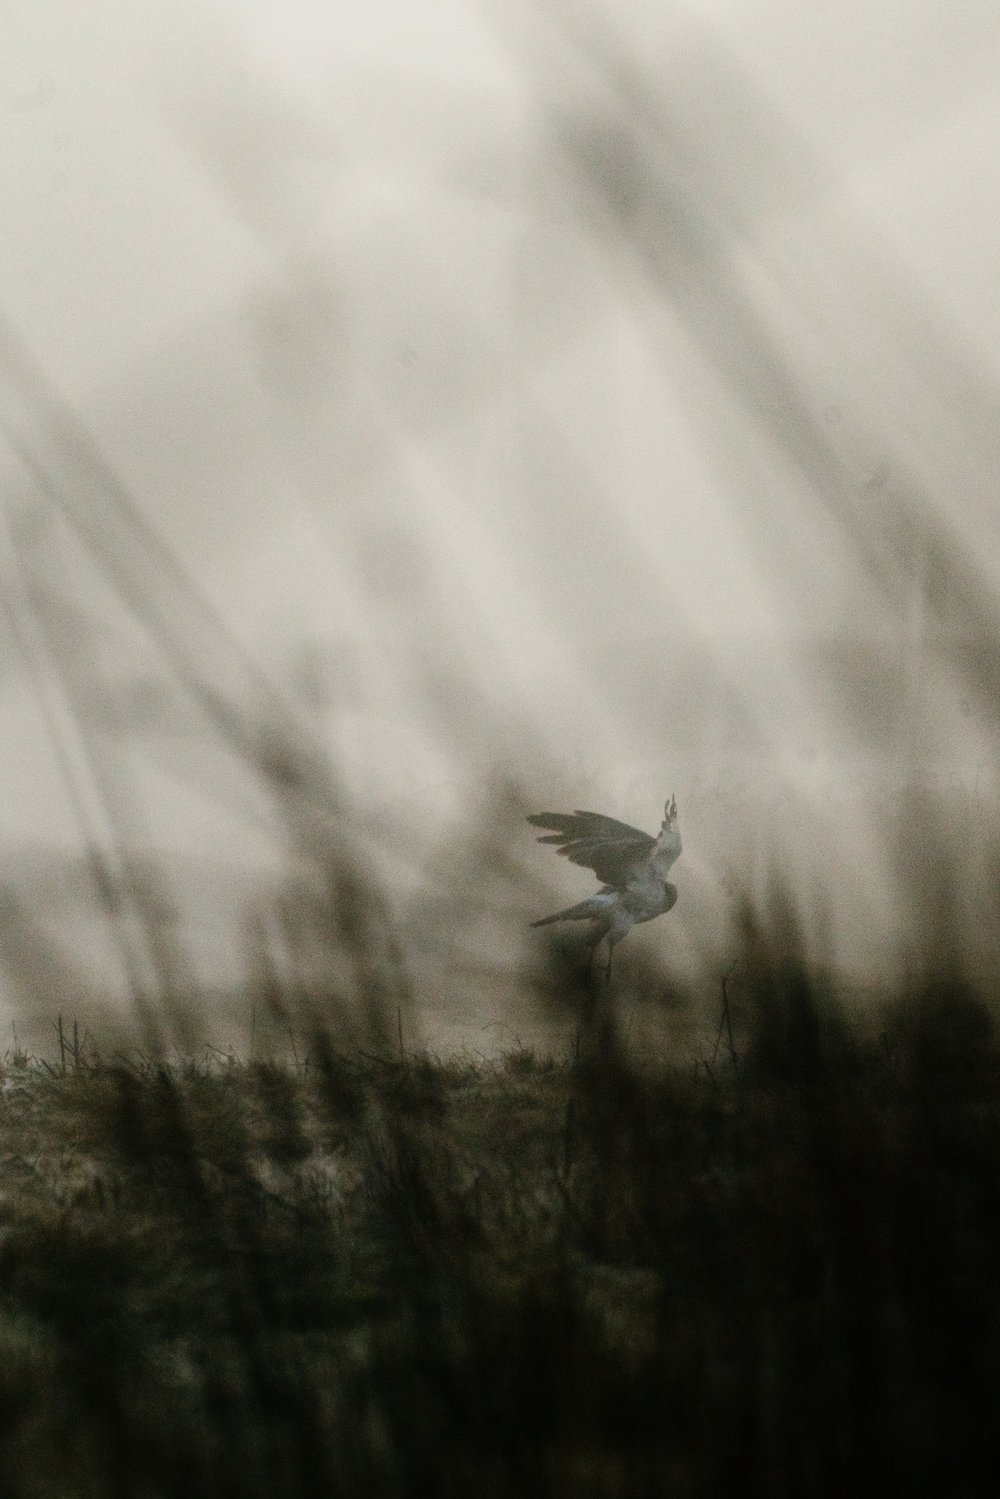 Photograph of a Northern Harrier on the Samish Flats in Washington State